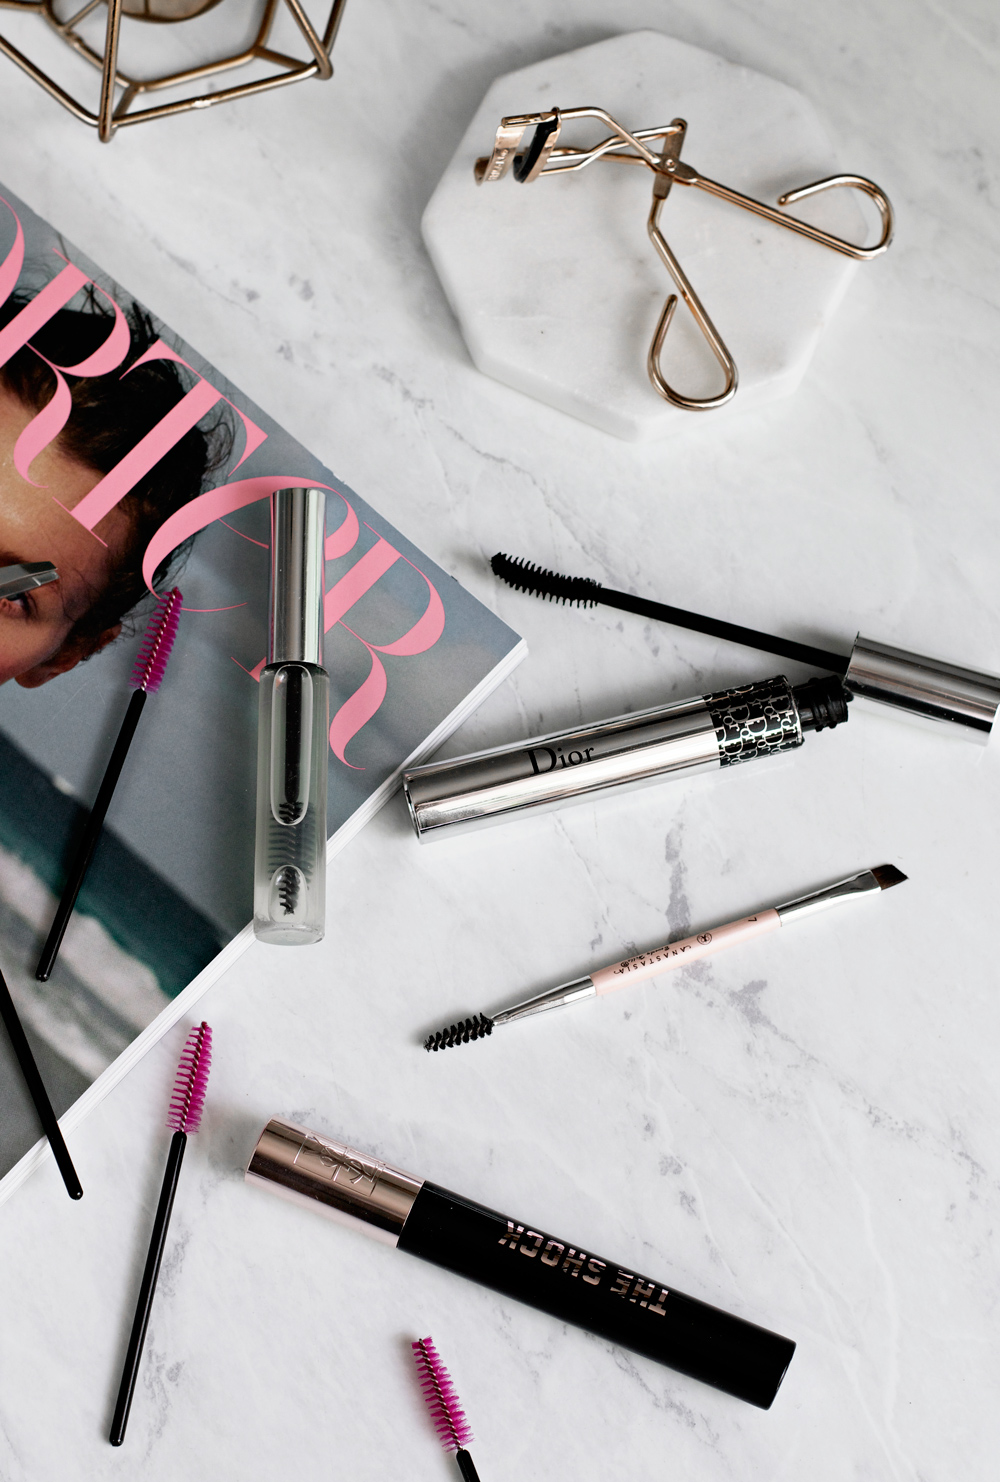 Ex over-plucker's guide to growing out your brows